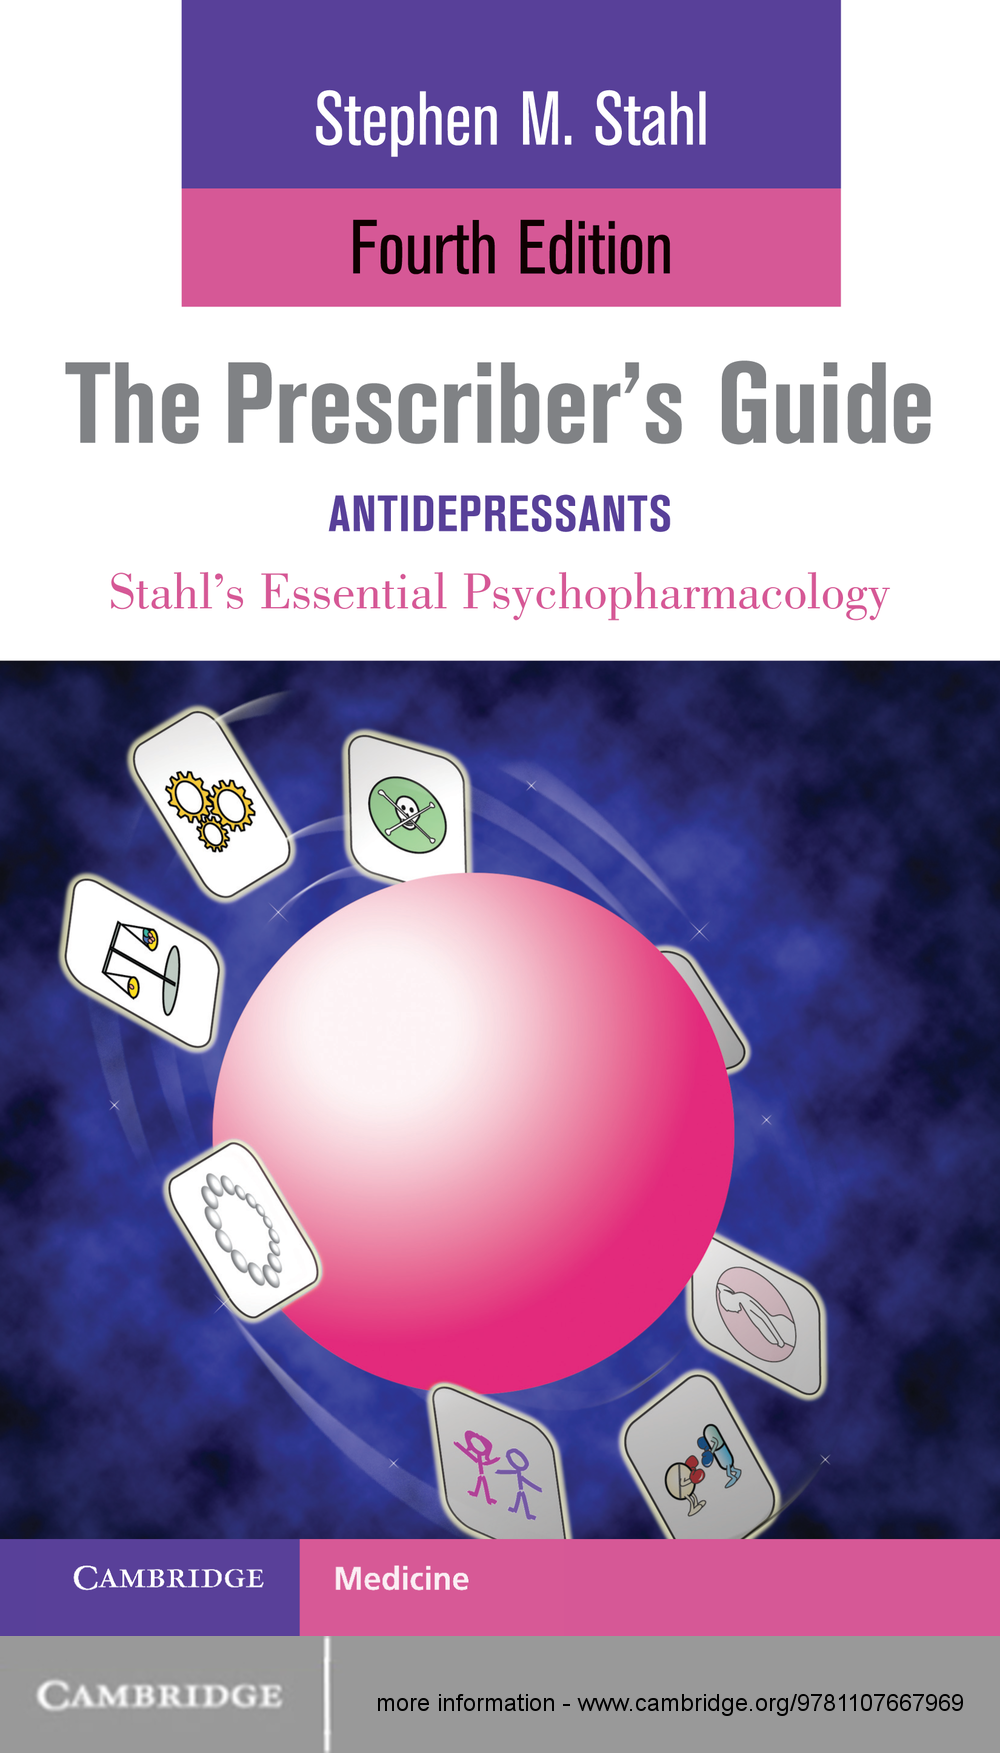 The Prescriber's Guide: Antidepressants Stahl's Essential Psychopharmacology